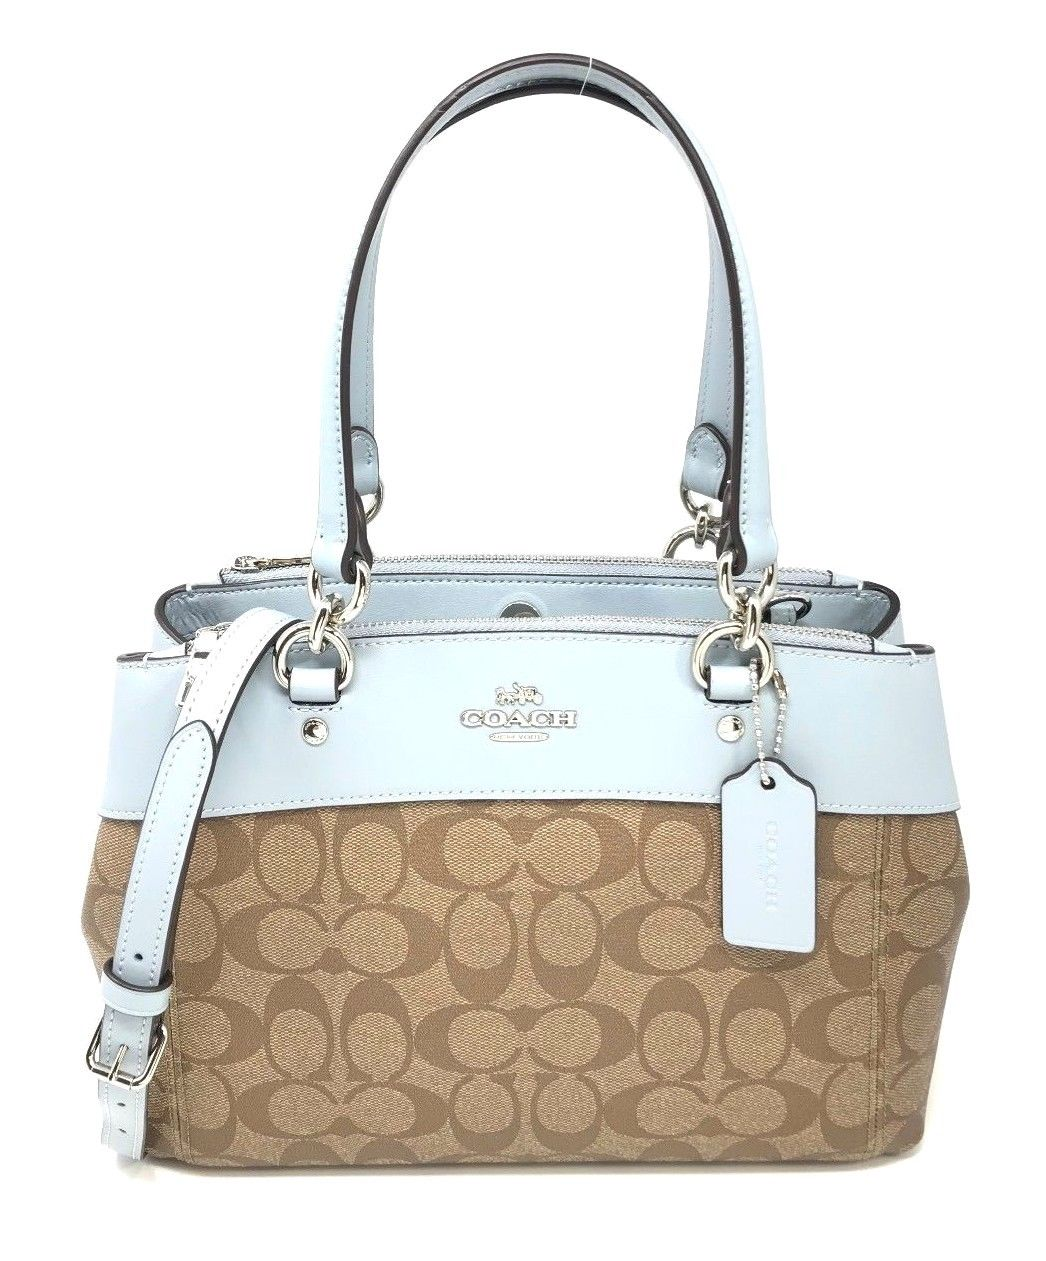 Coach F26139 Signature Mini Brooke Carryall Tote Bag Crossbody Khaki Pale Blue